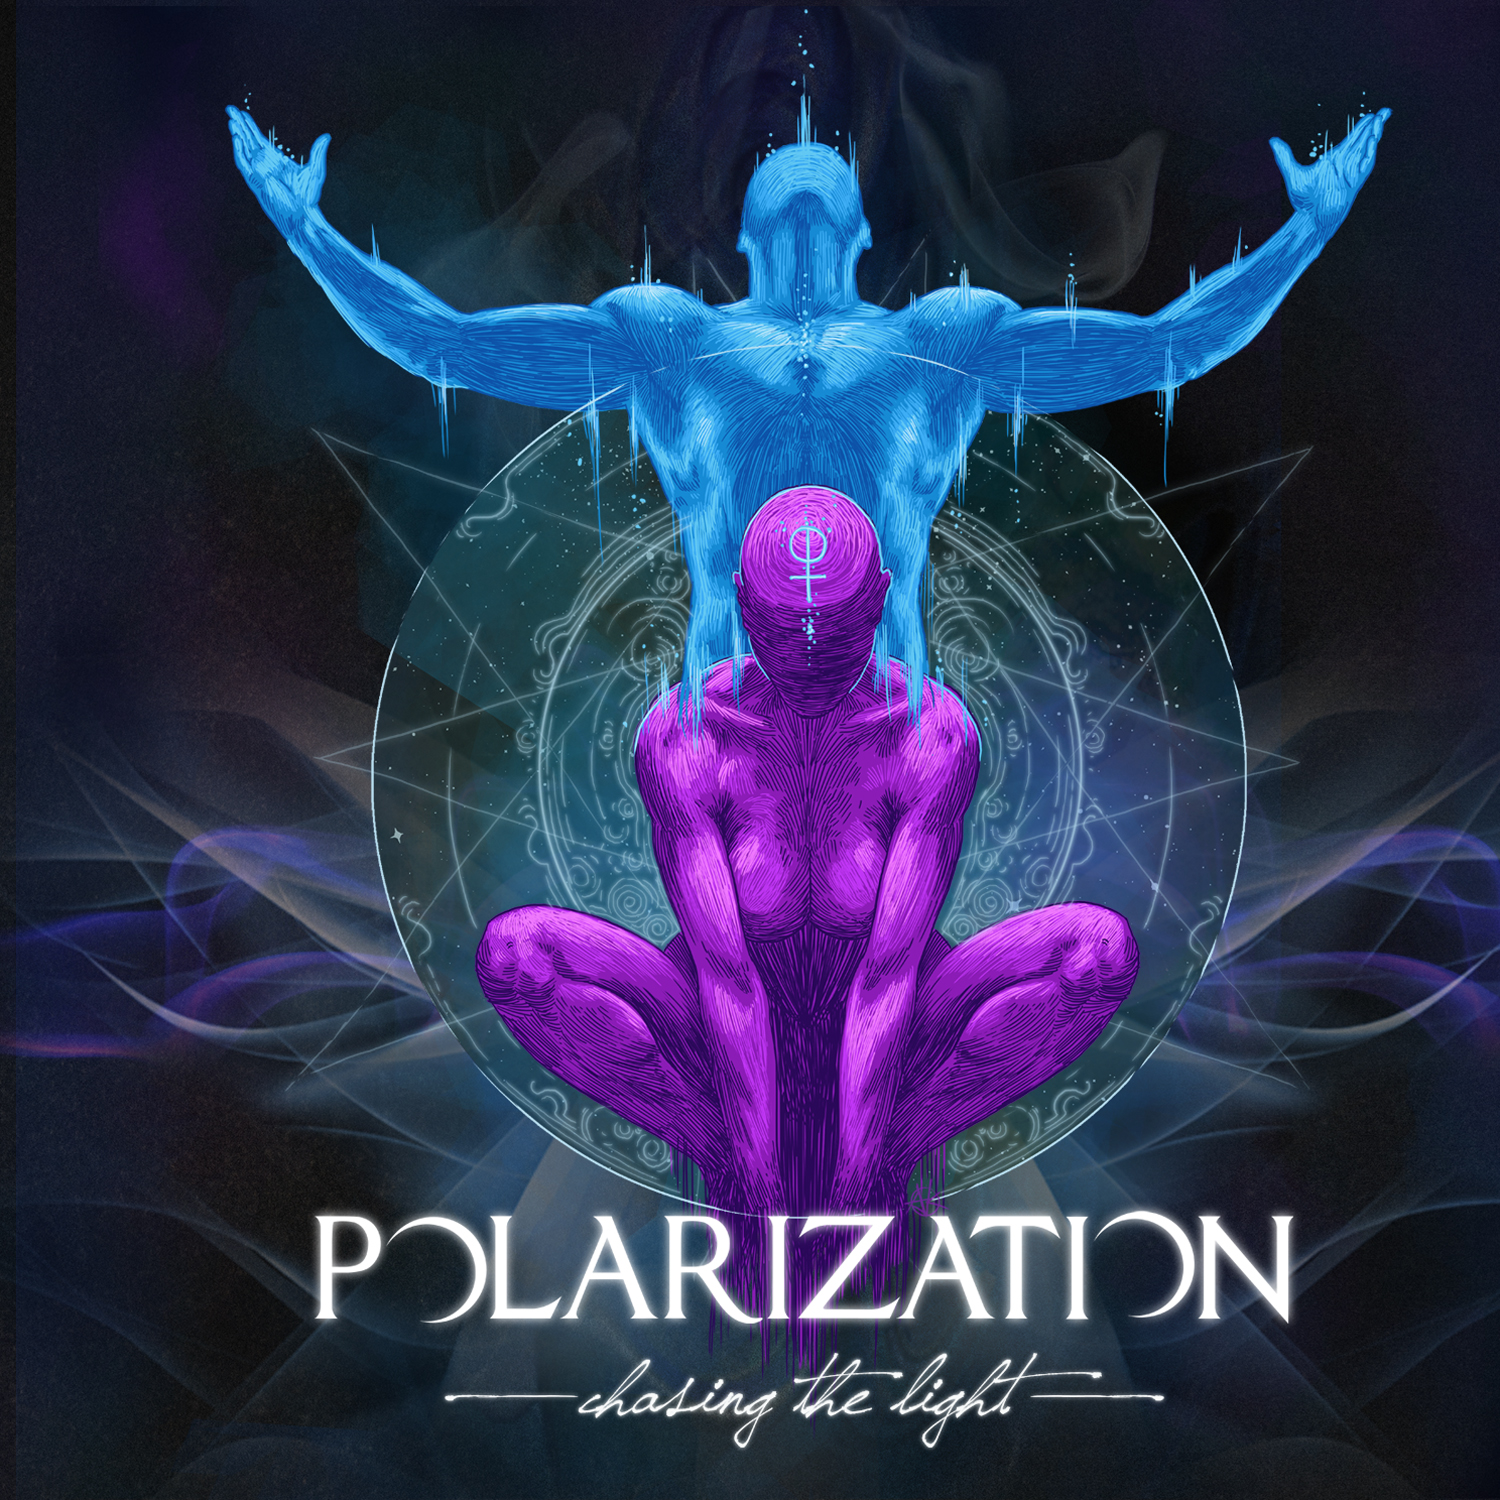 Polarization – Chasing the Light Review